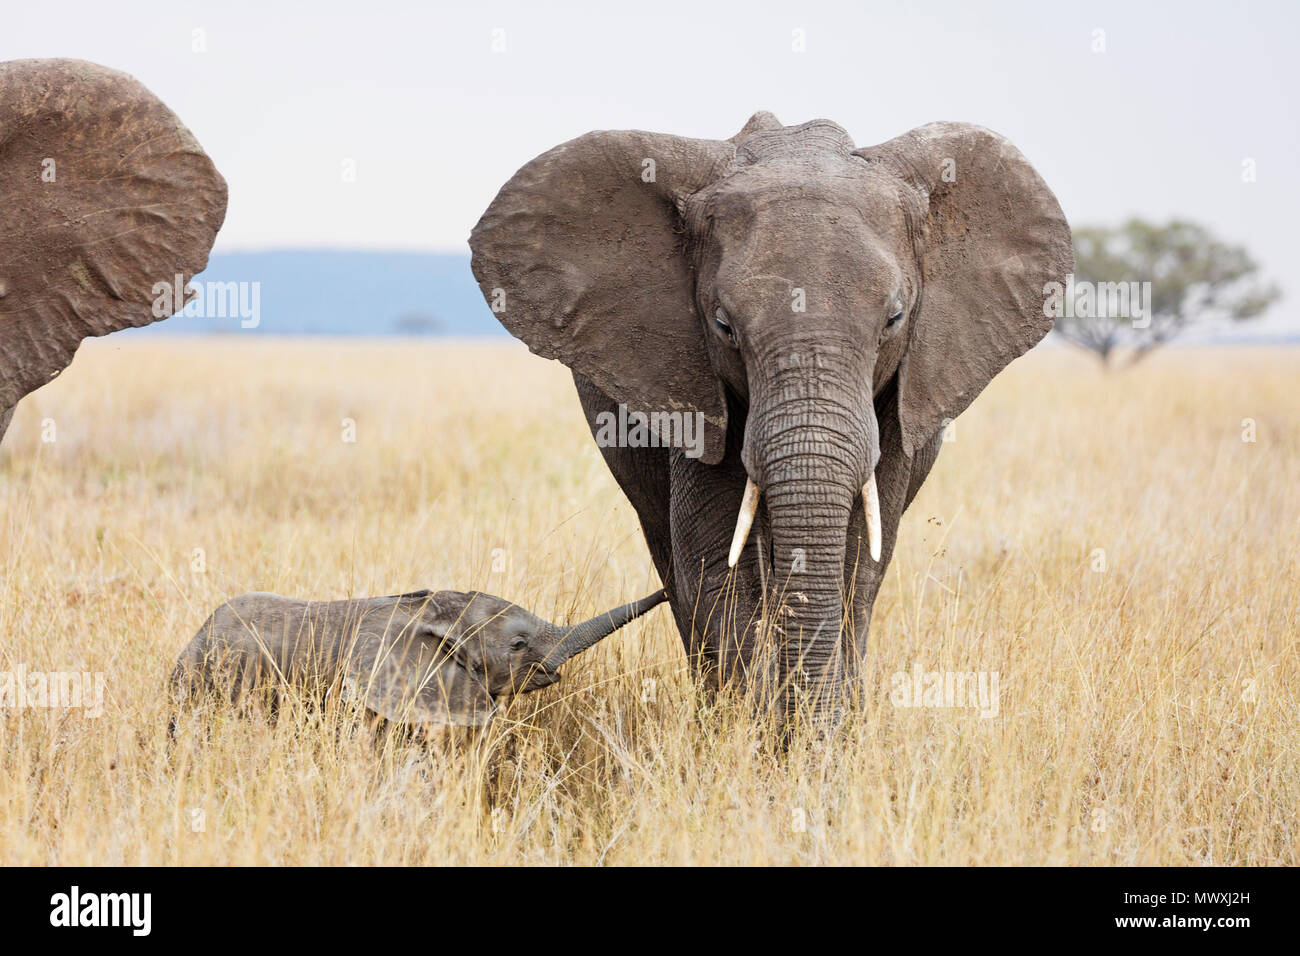 Baby African elephant and mother (Loxodonta africana), Serengeti National Park, UNESCO World Heritage Site, Tanzania, East Africa, Africa - Stock Image